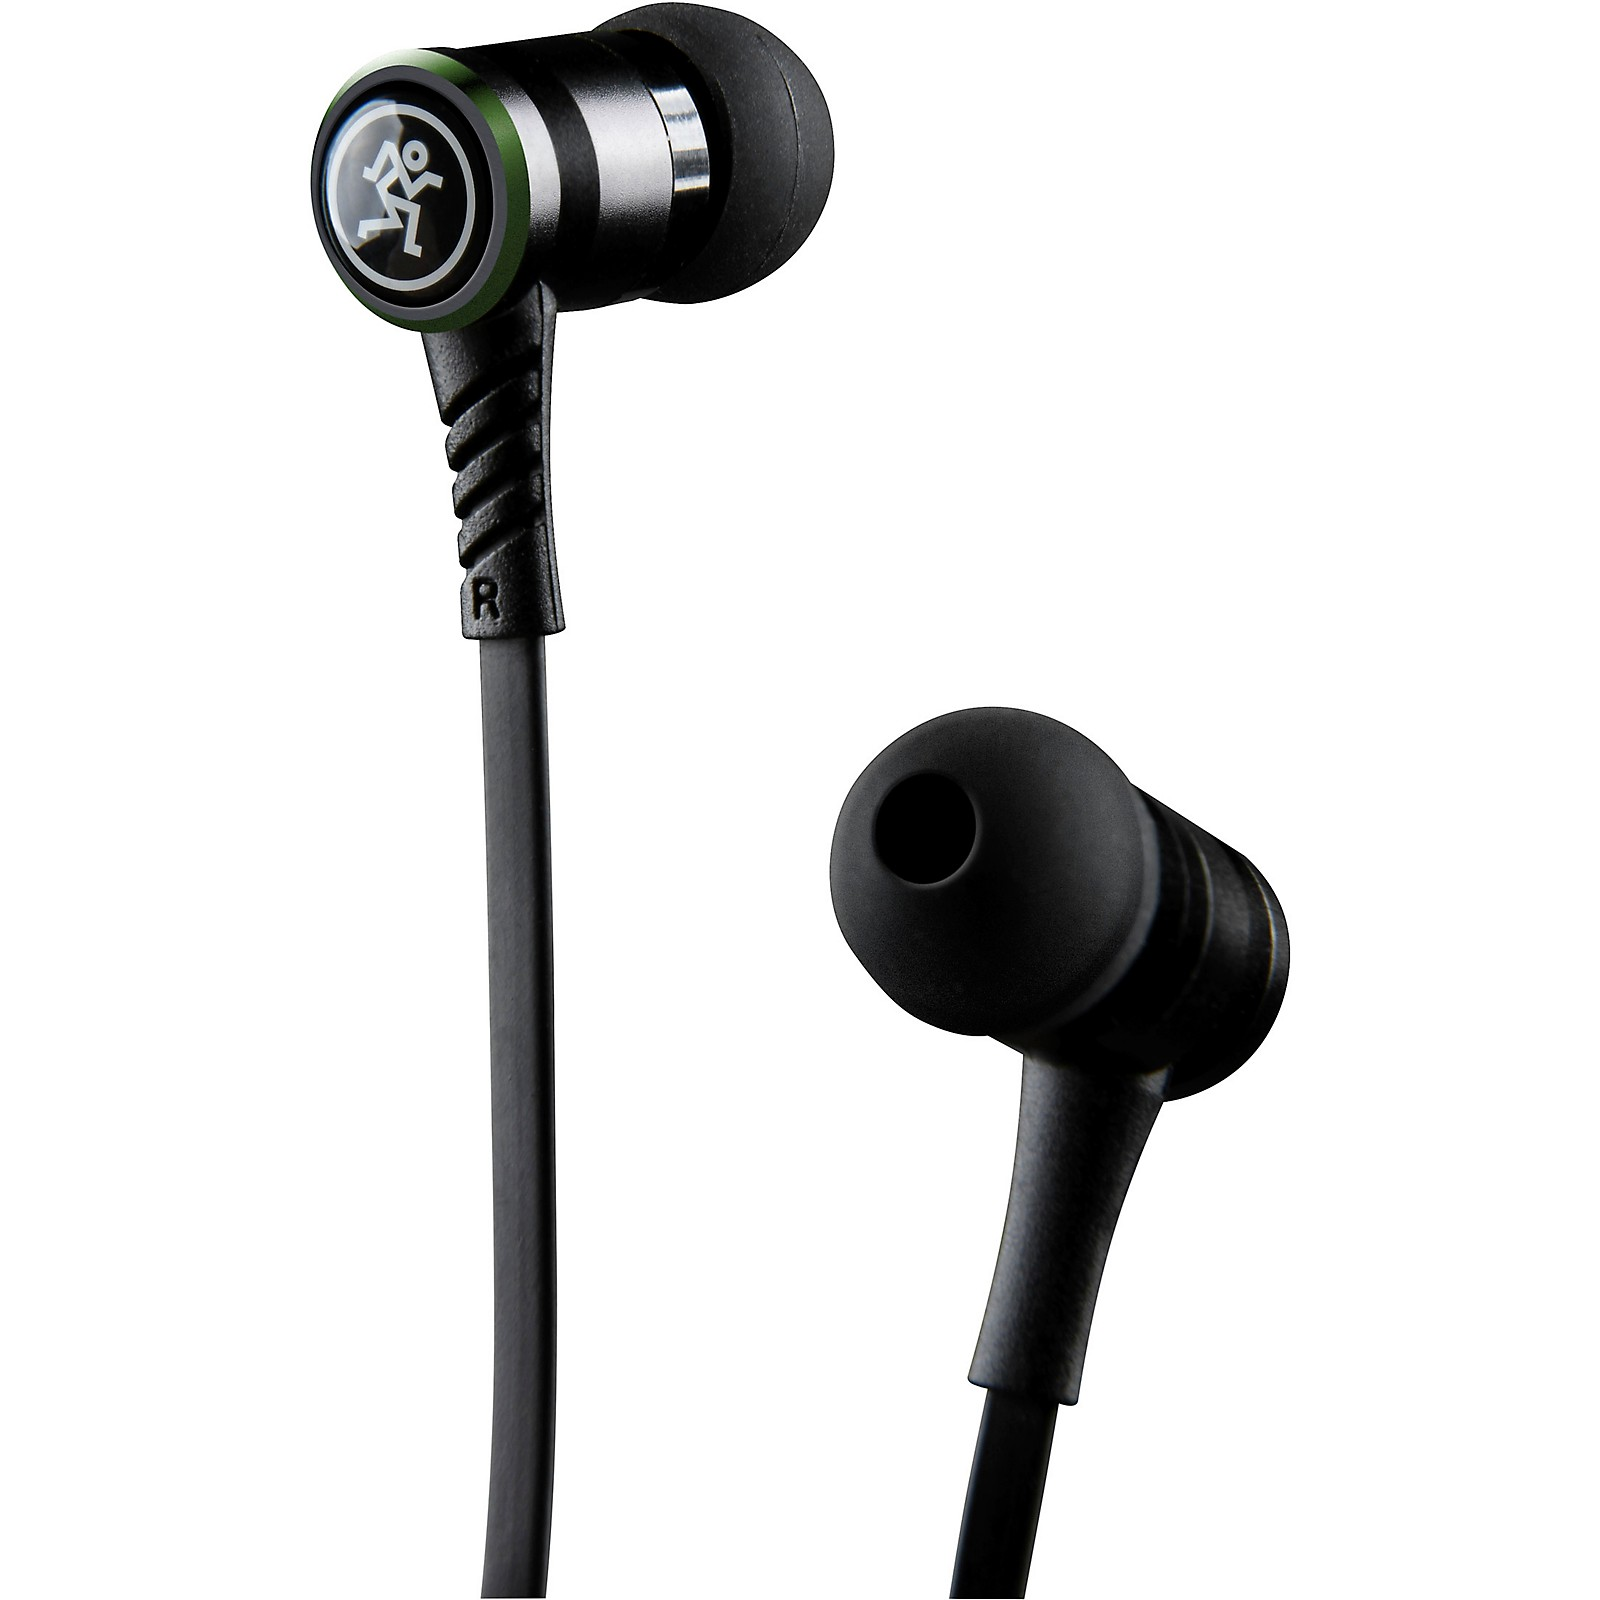 Mackie CR Buds High Performance Earphones with Mic and Control